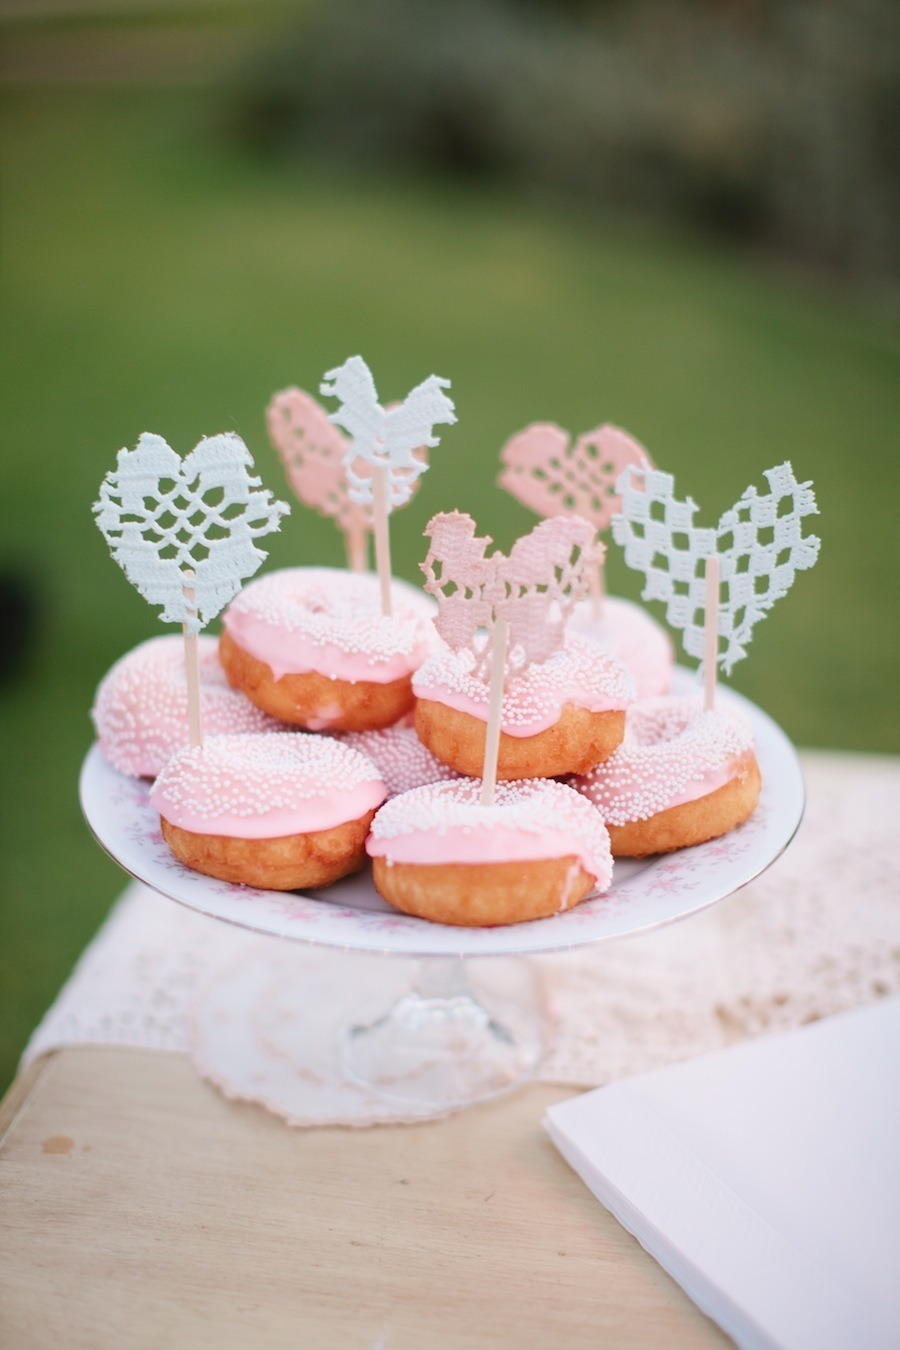 Wedding dessert ideas that are not cake wedding dessert for Dessert cake ideas